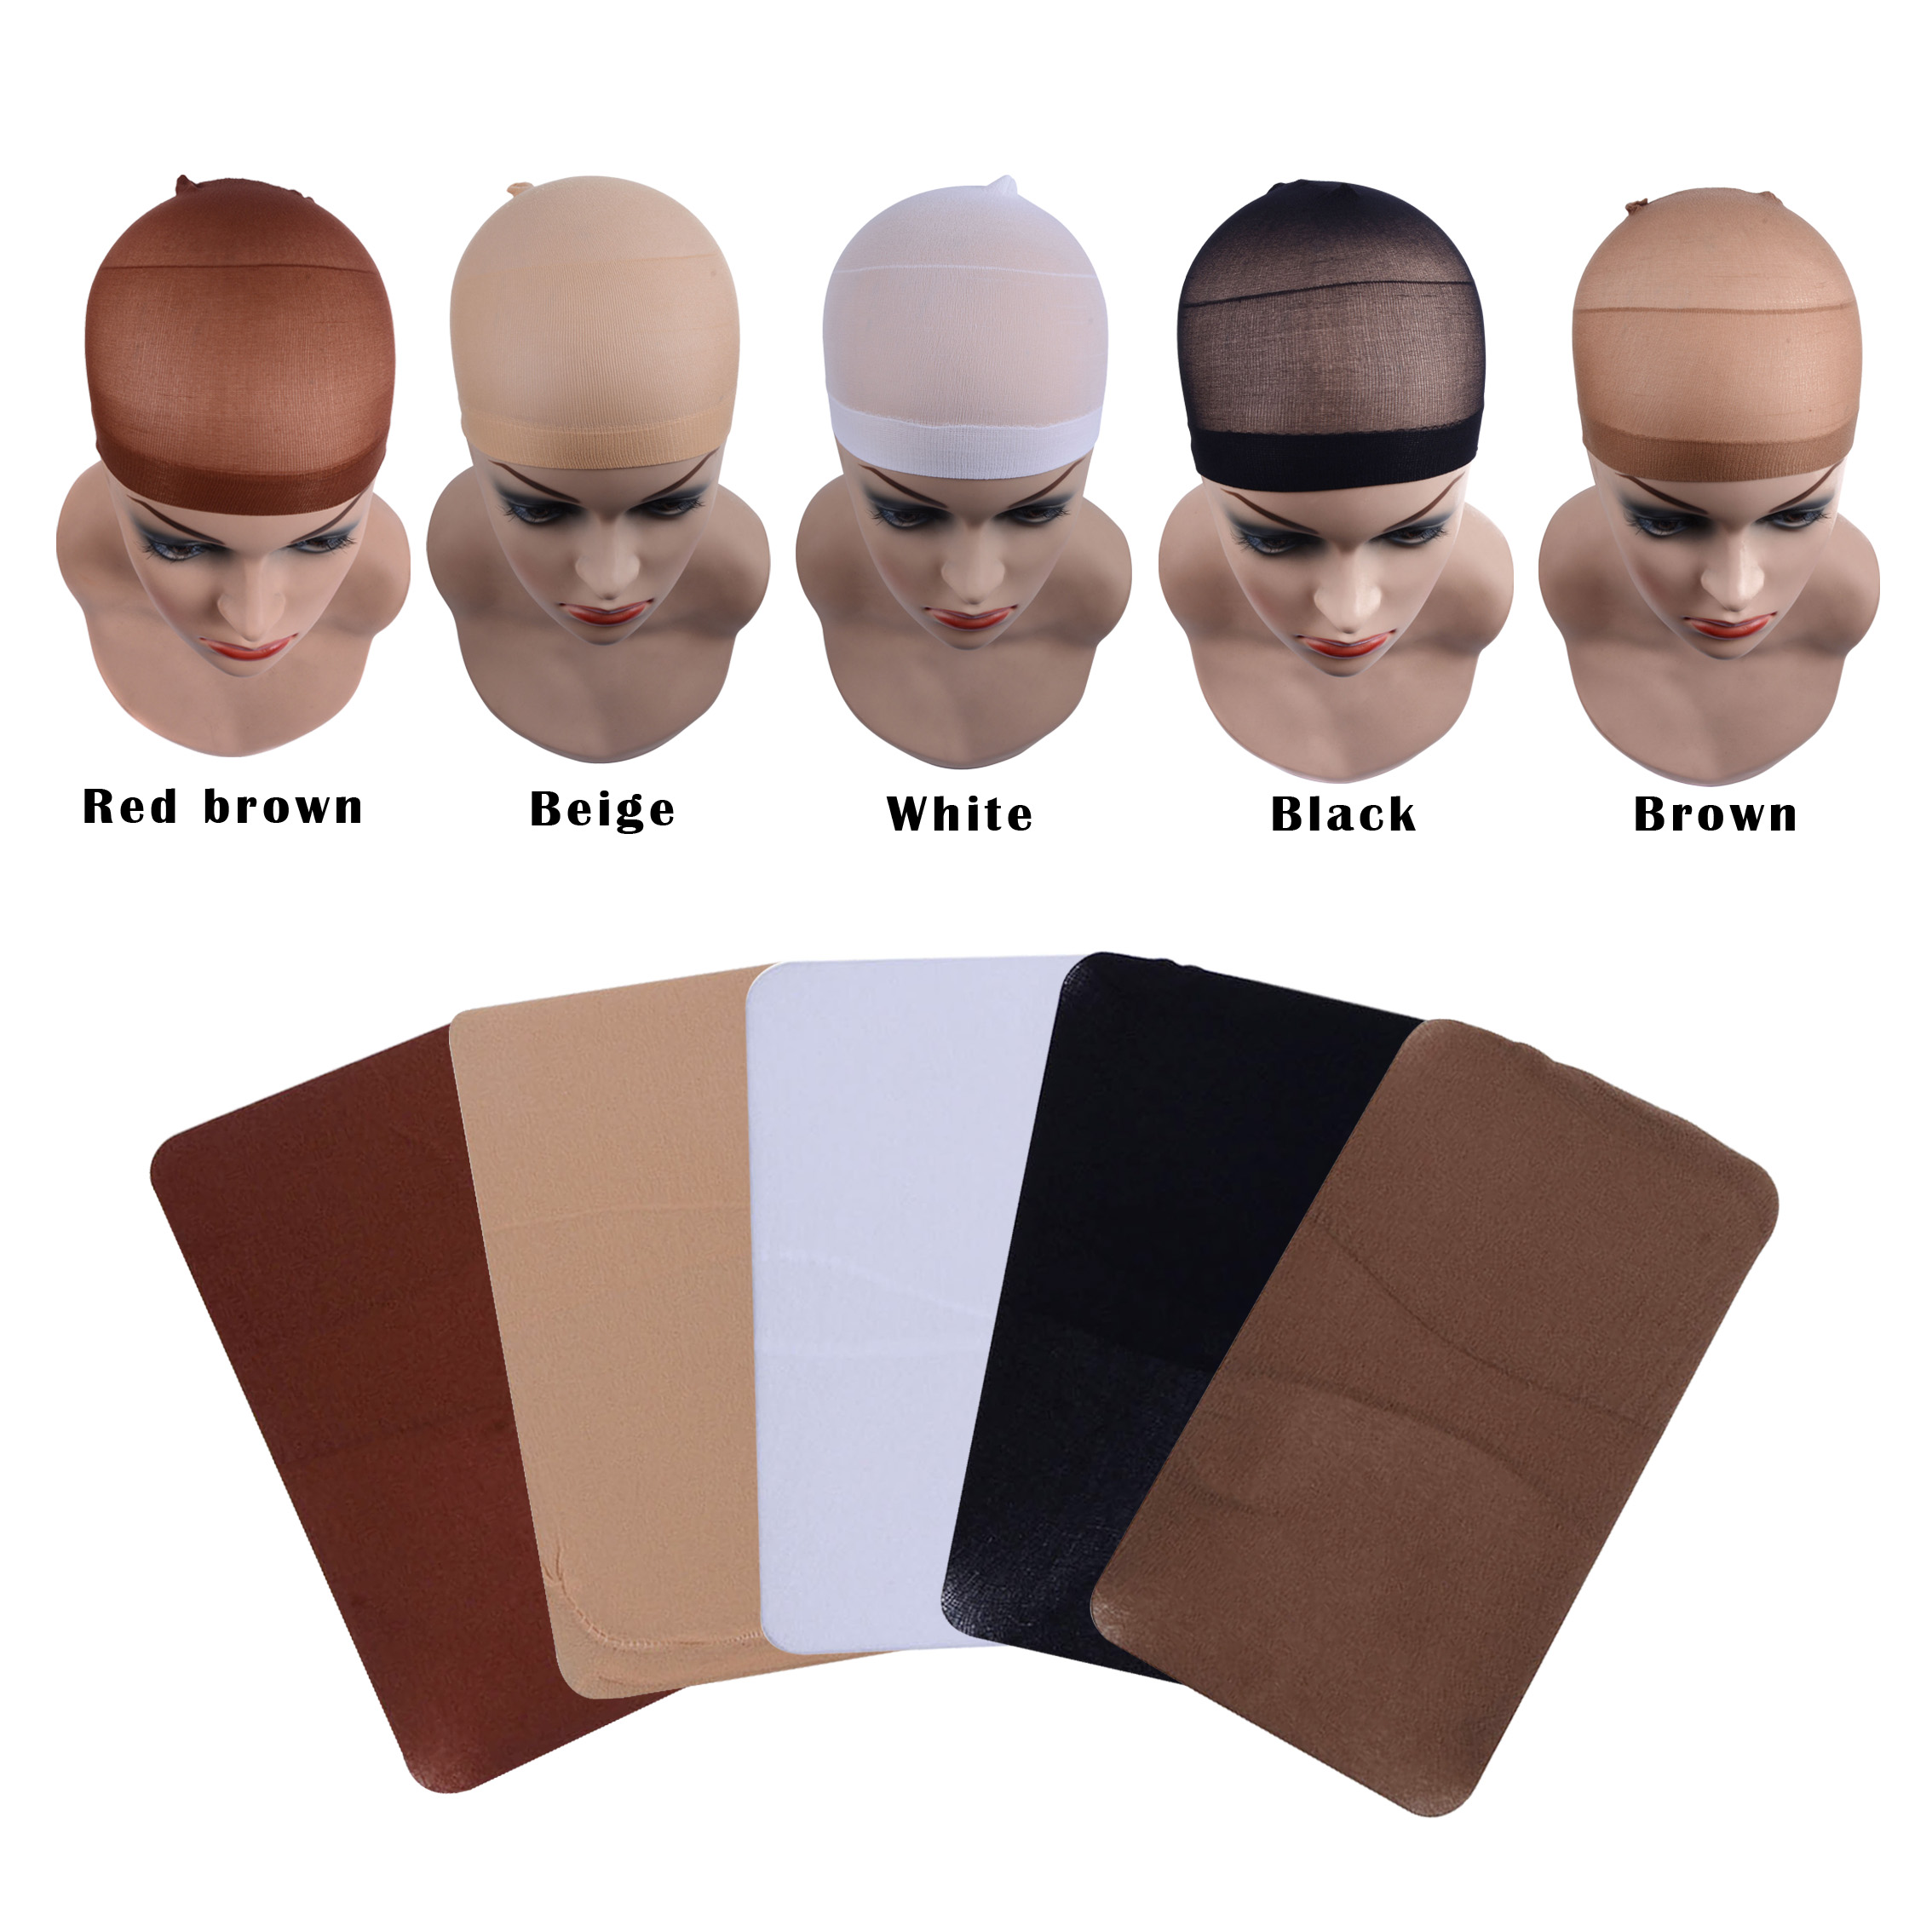 36pcs/(18bag) Hair Mesh Wig Cap Hair Nets Wig Liner Hairnets Snood Glueless Dome Wig Cap  Stretchable Elastic Hair Net